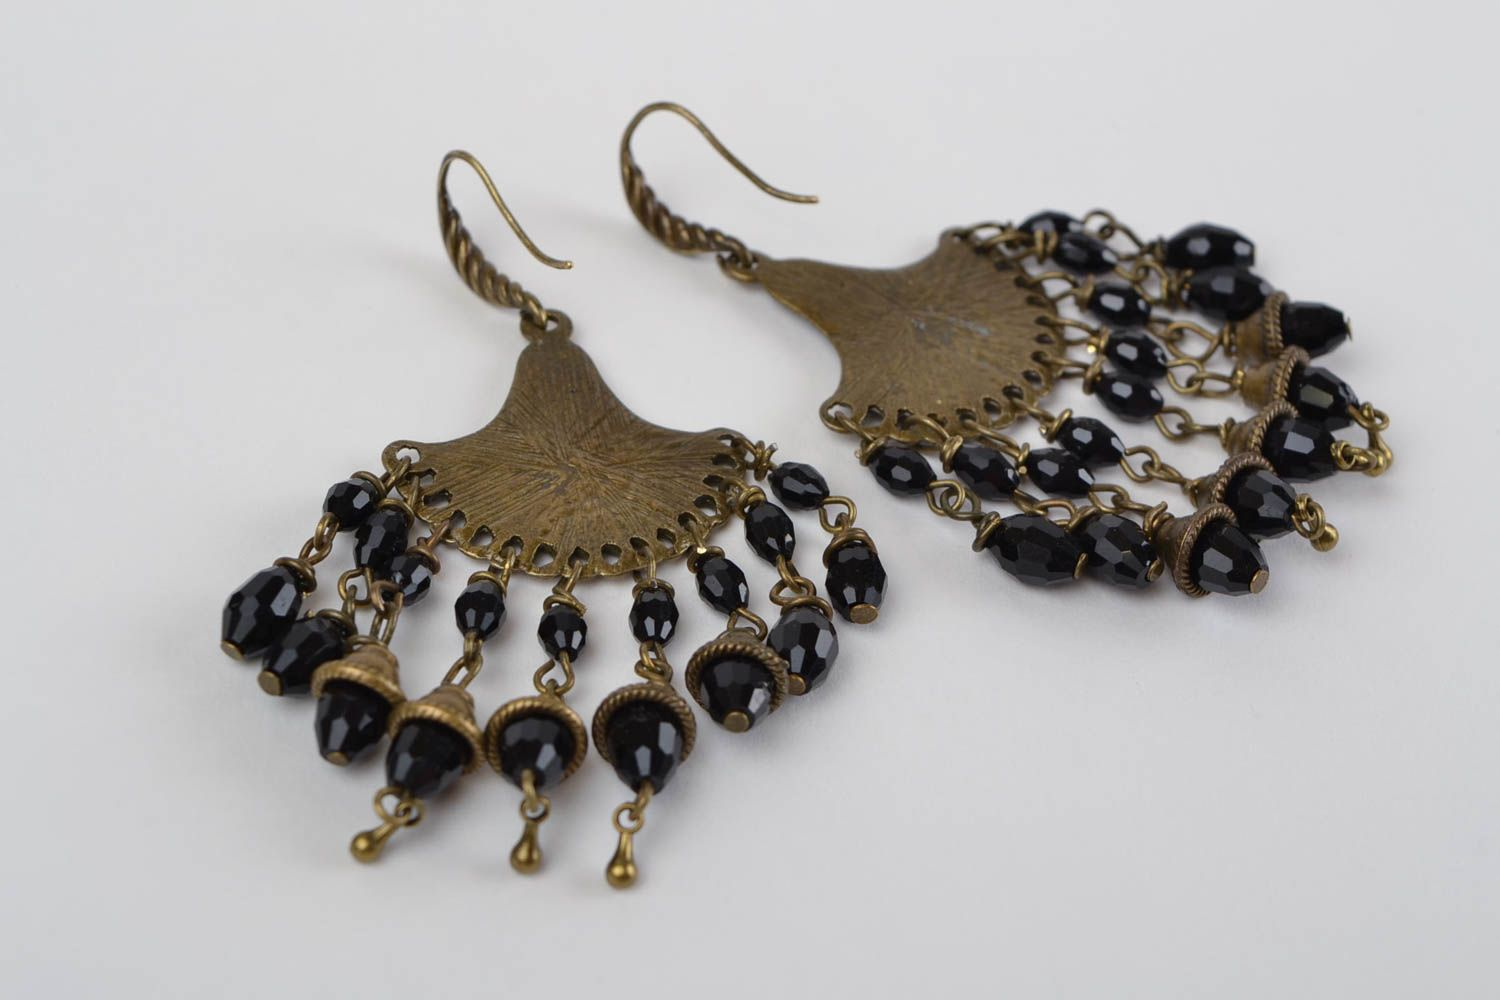 Handmade massive earrings accessory in Eastern style beautiful earrings photo 9